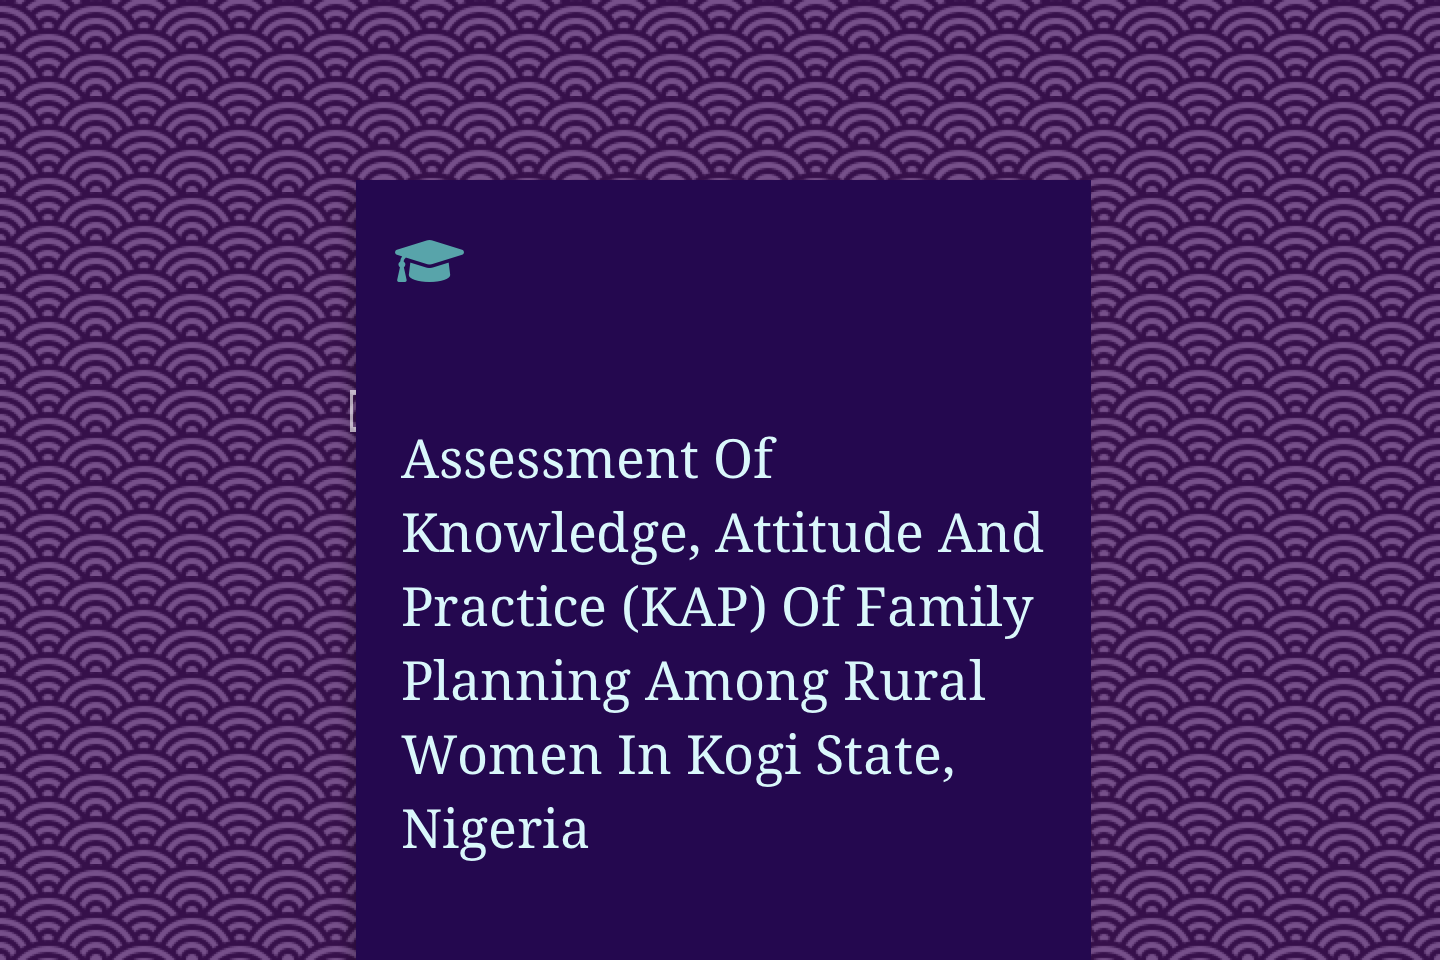 Assessment Of Knowledge, Attitude And Practice (KAP) Of Family Planning Among Rural Women In Kogi State, Nigeria